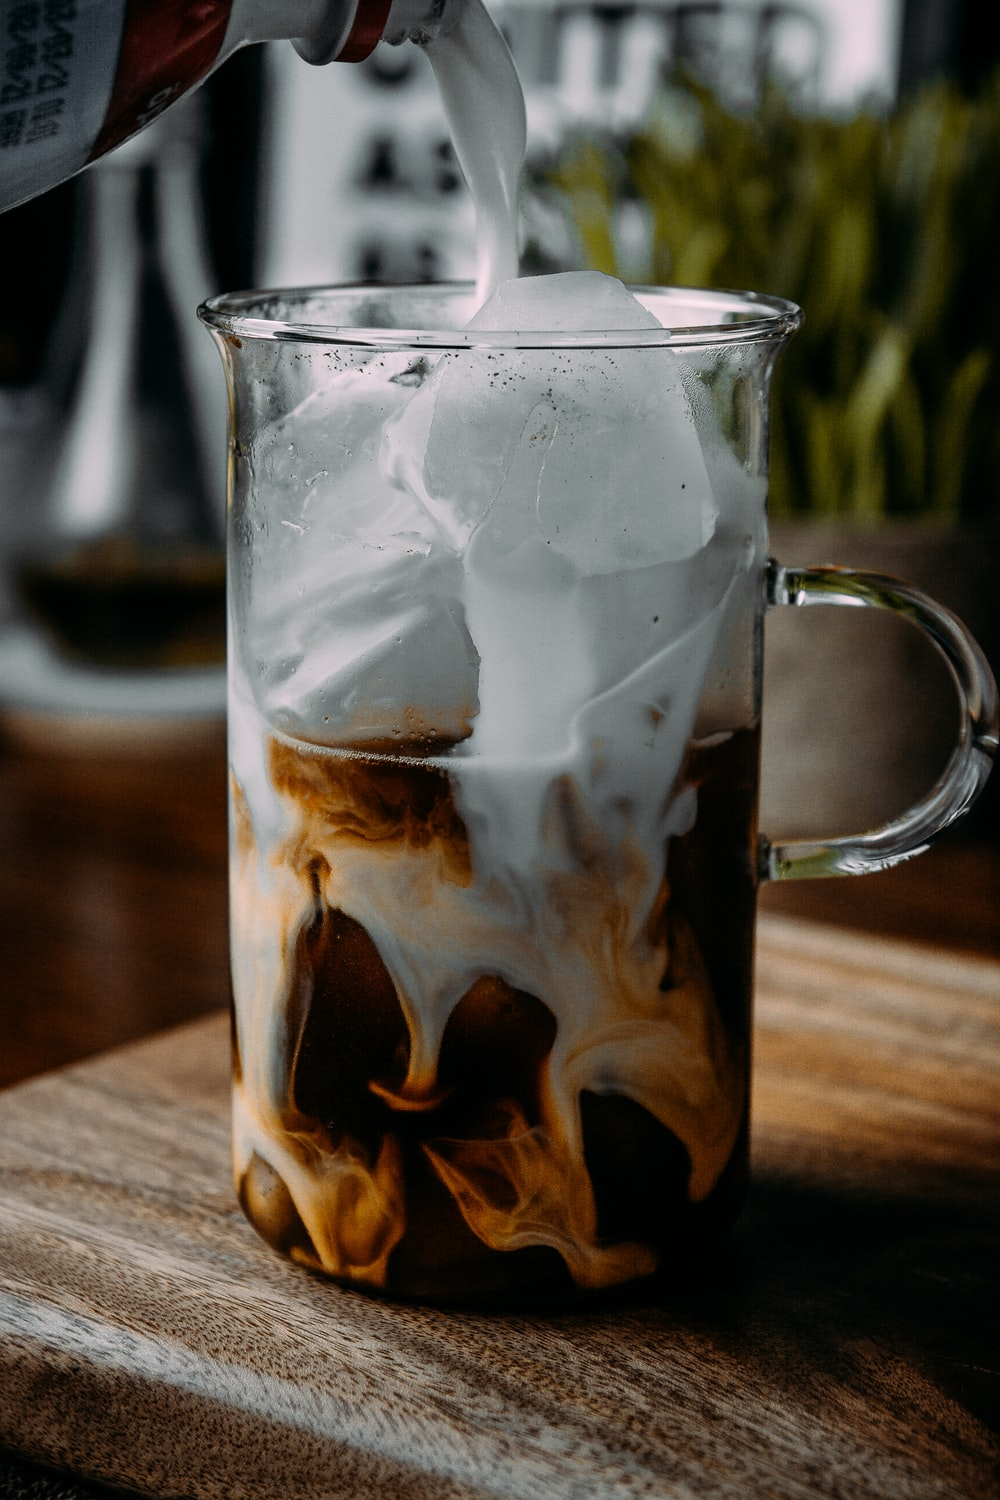 clear glass mug with ice cubes and brown liquid